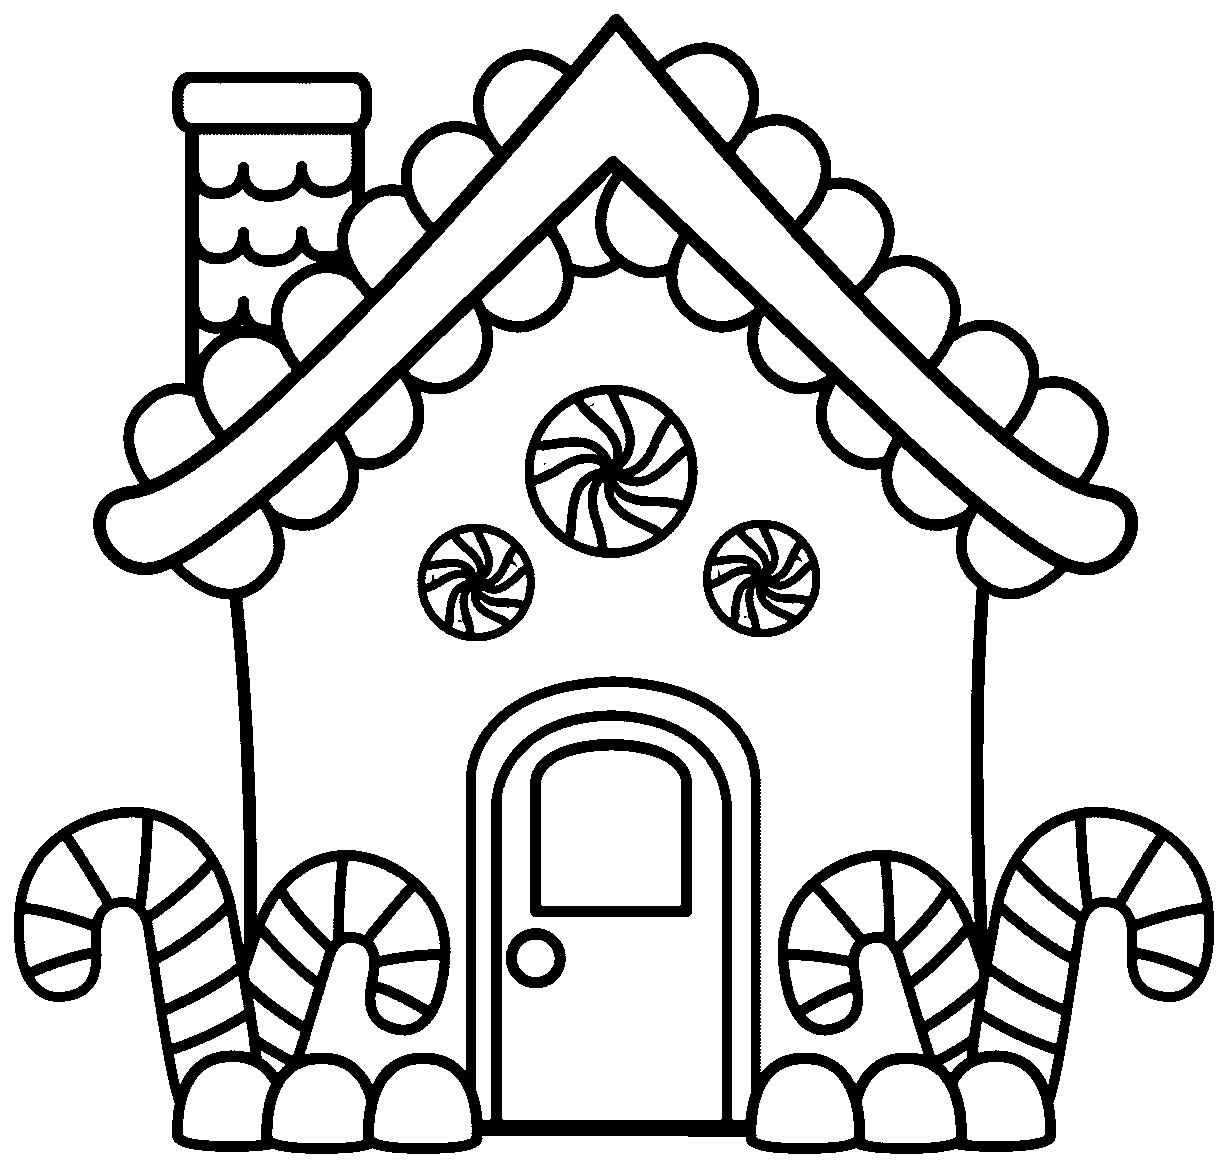 1228x1168 Gingerbread Coloring Pages Gingerbread House Coloring Pages